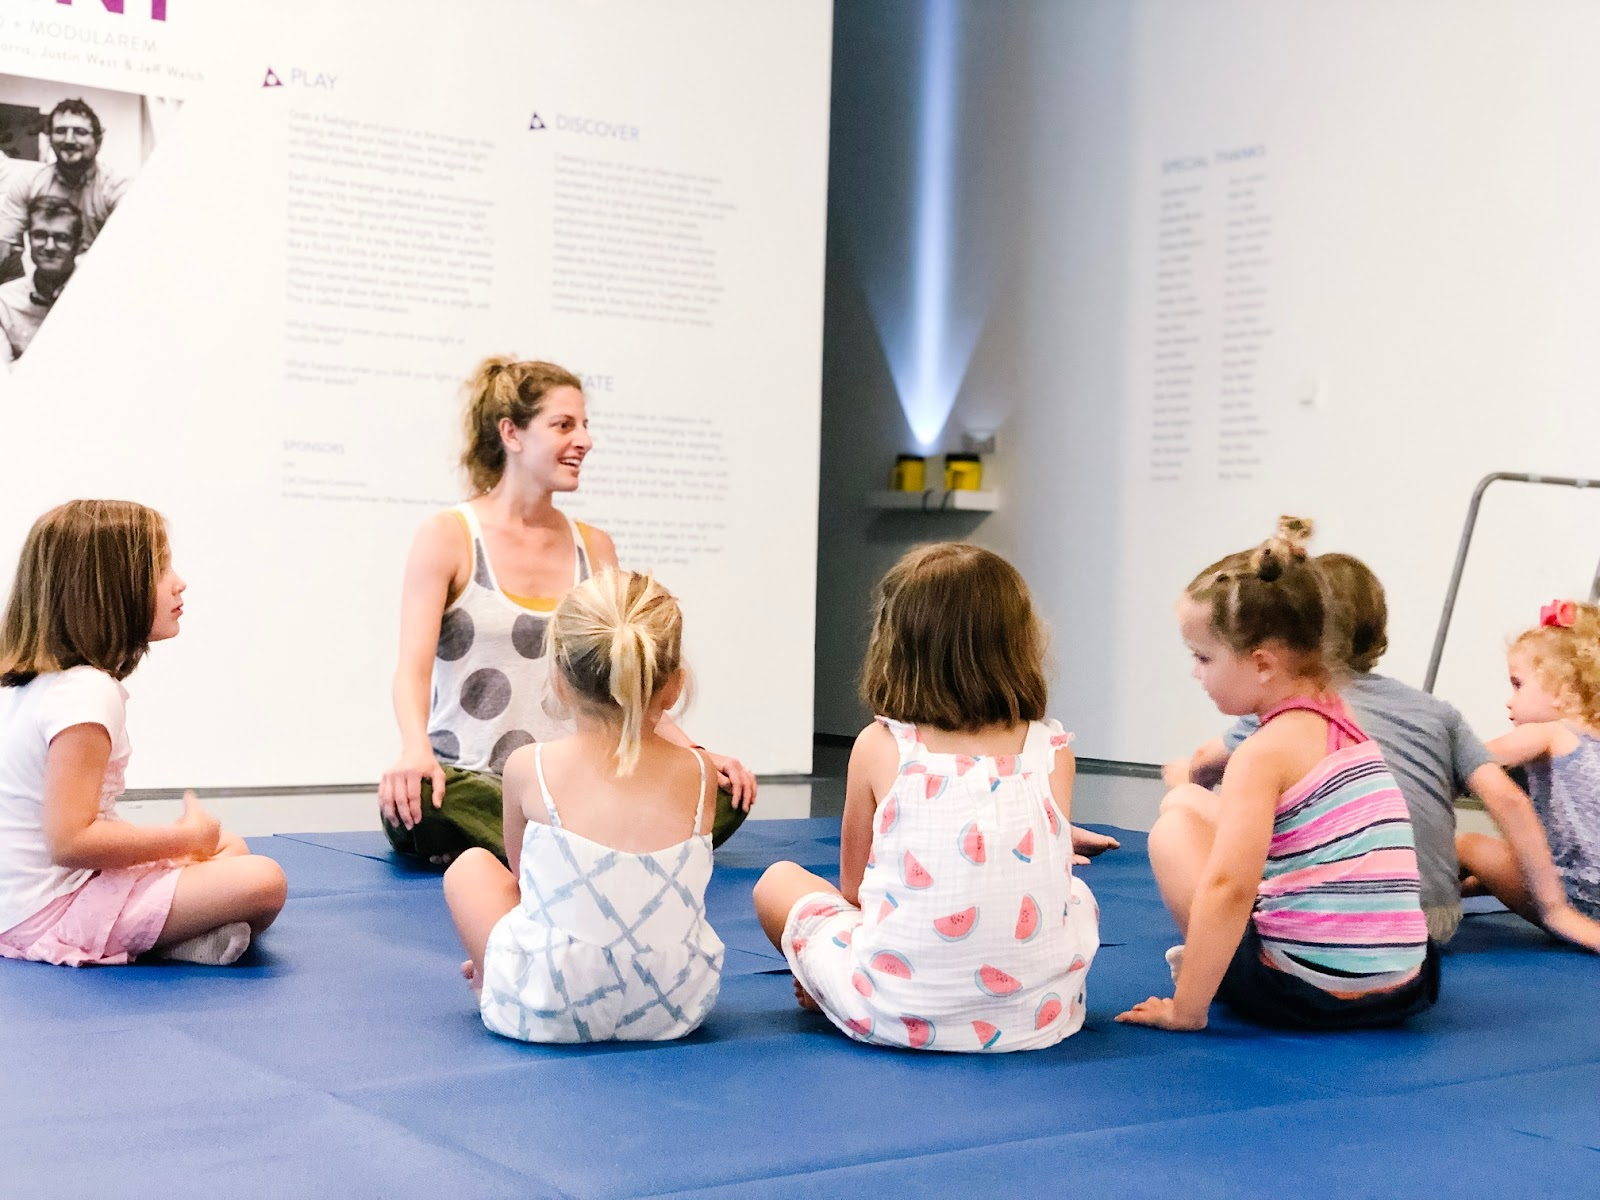 Yoga at the UnMuseum